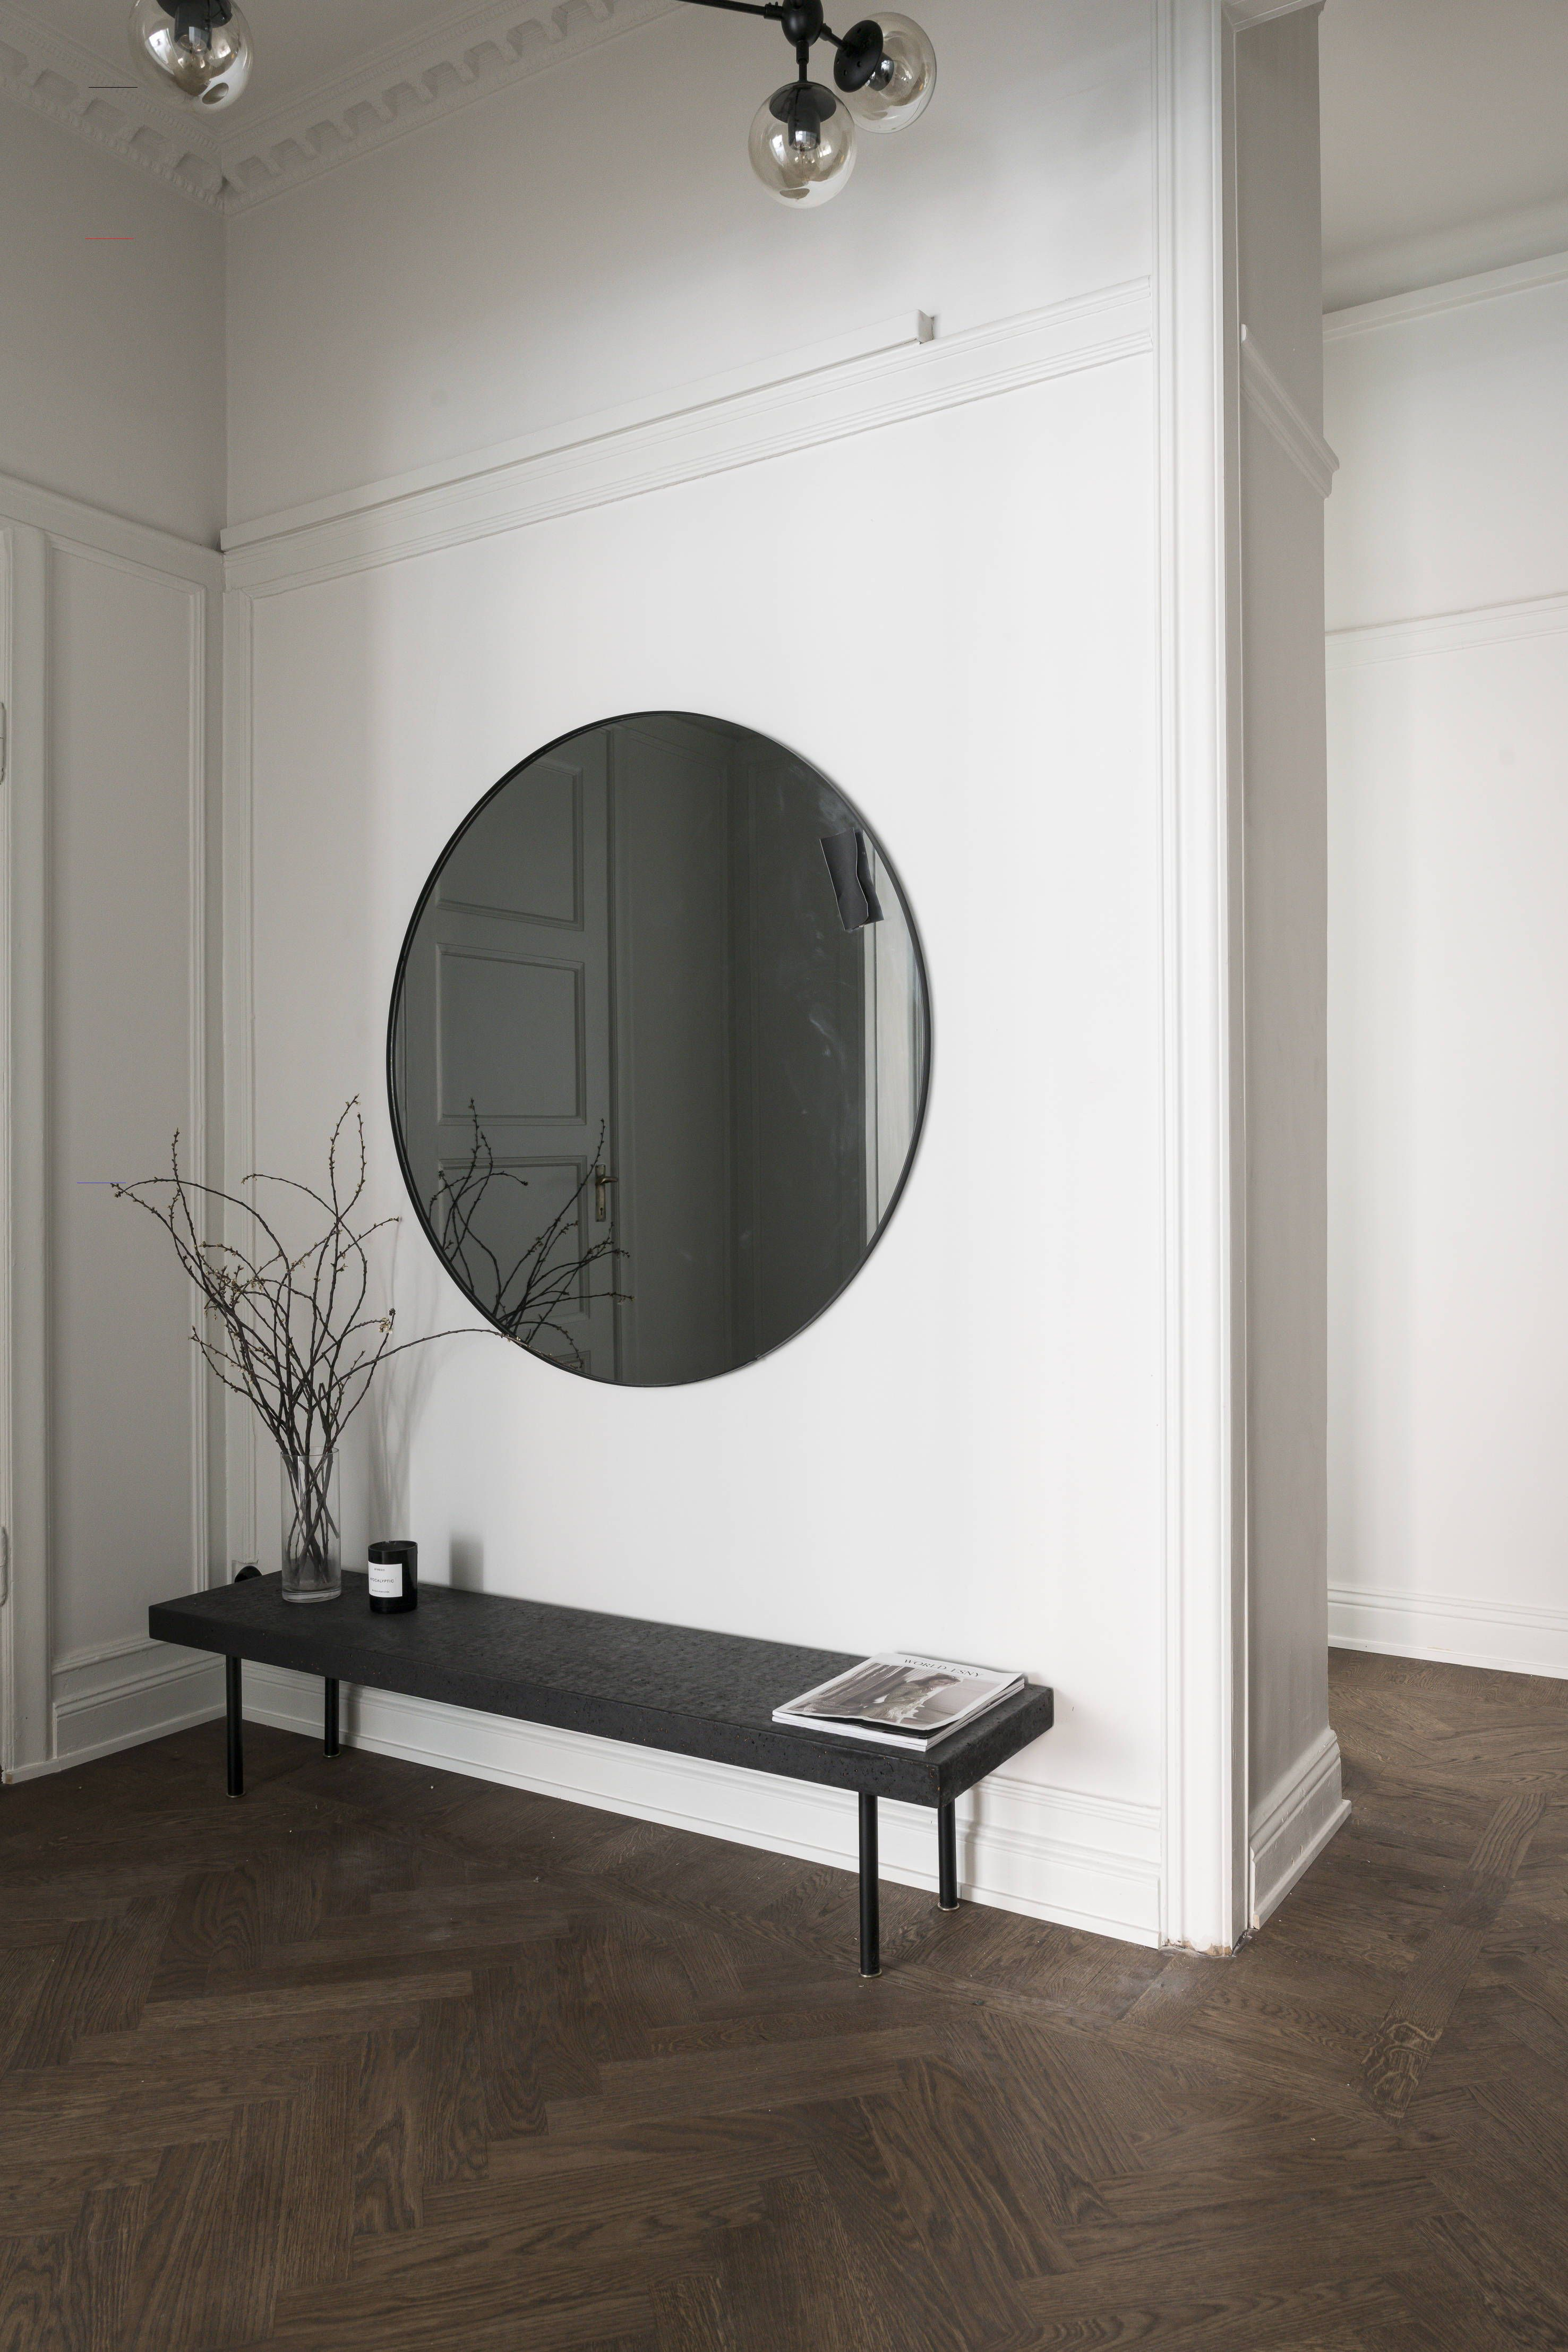 Desing by Coco Lapine Design